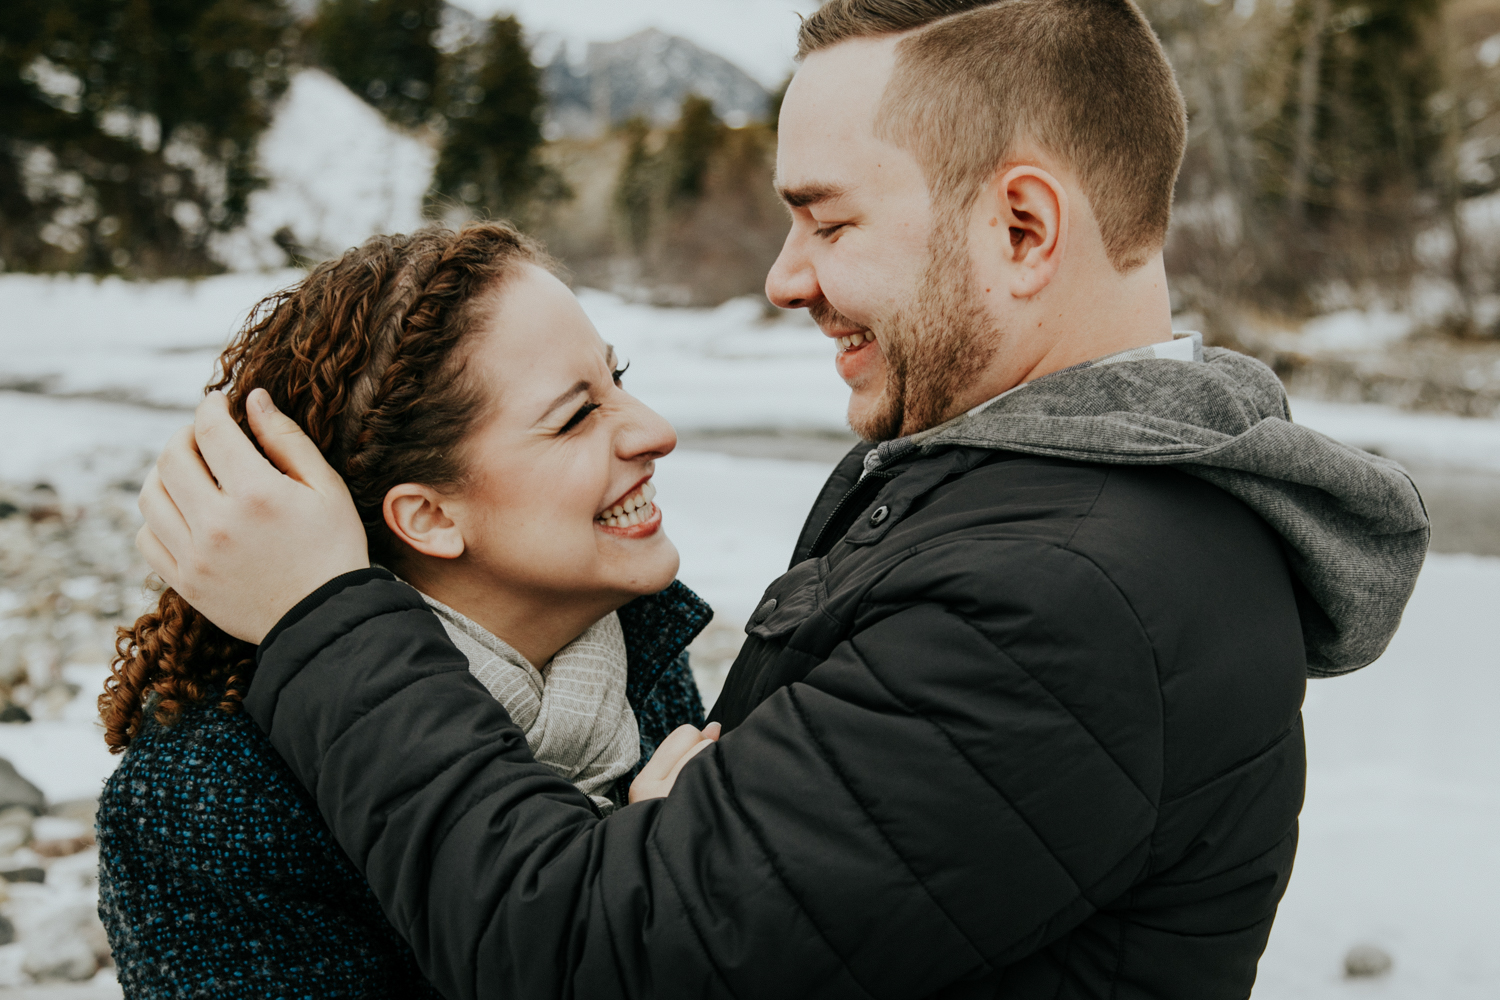 waterton-photographer-love-and-be-loved-photography-trent-danielle-engagement-winter-picture-image-photo-8.jpg